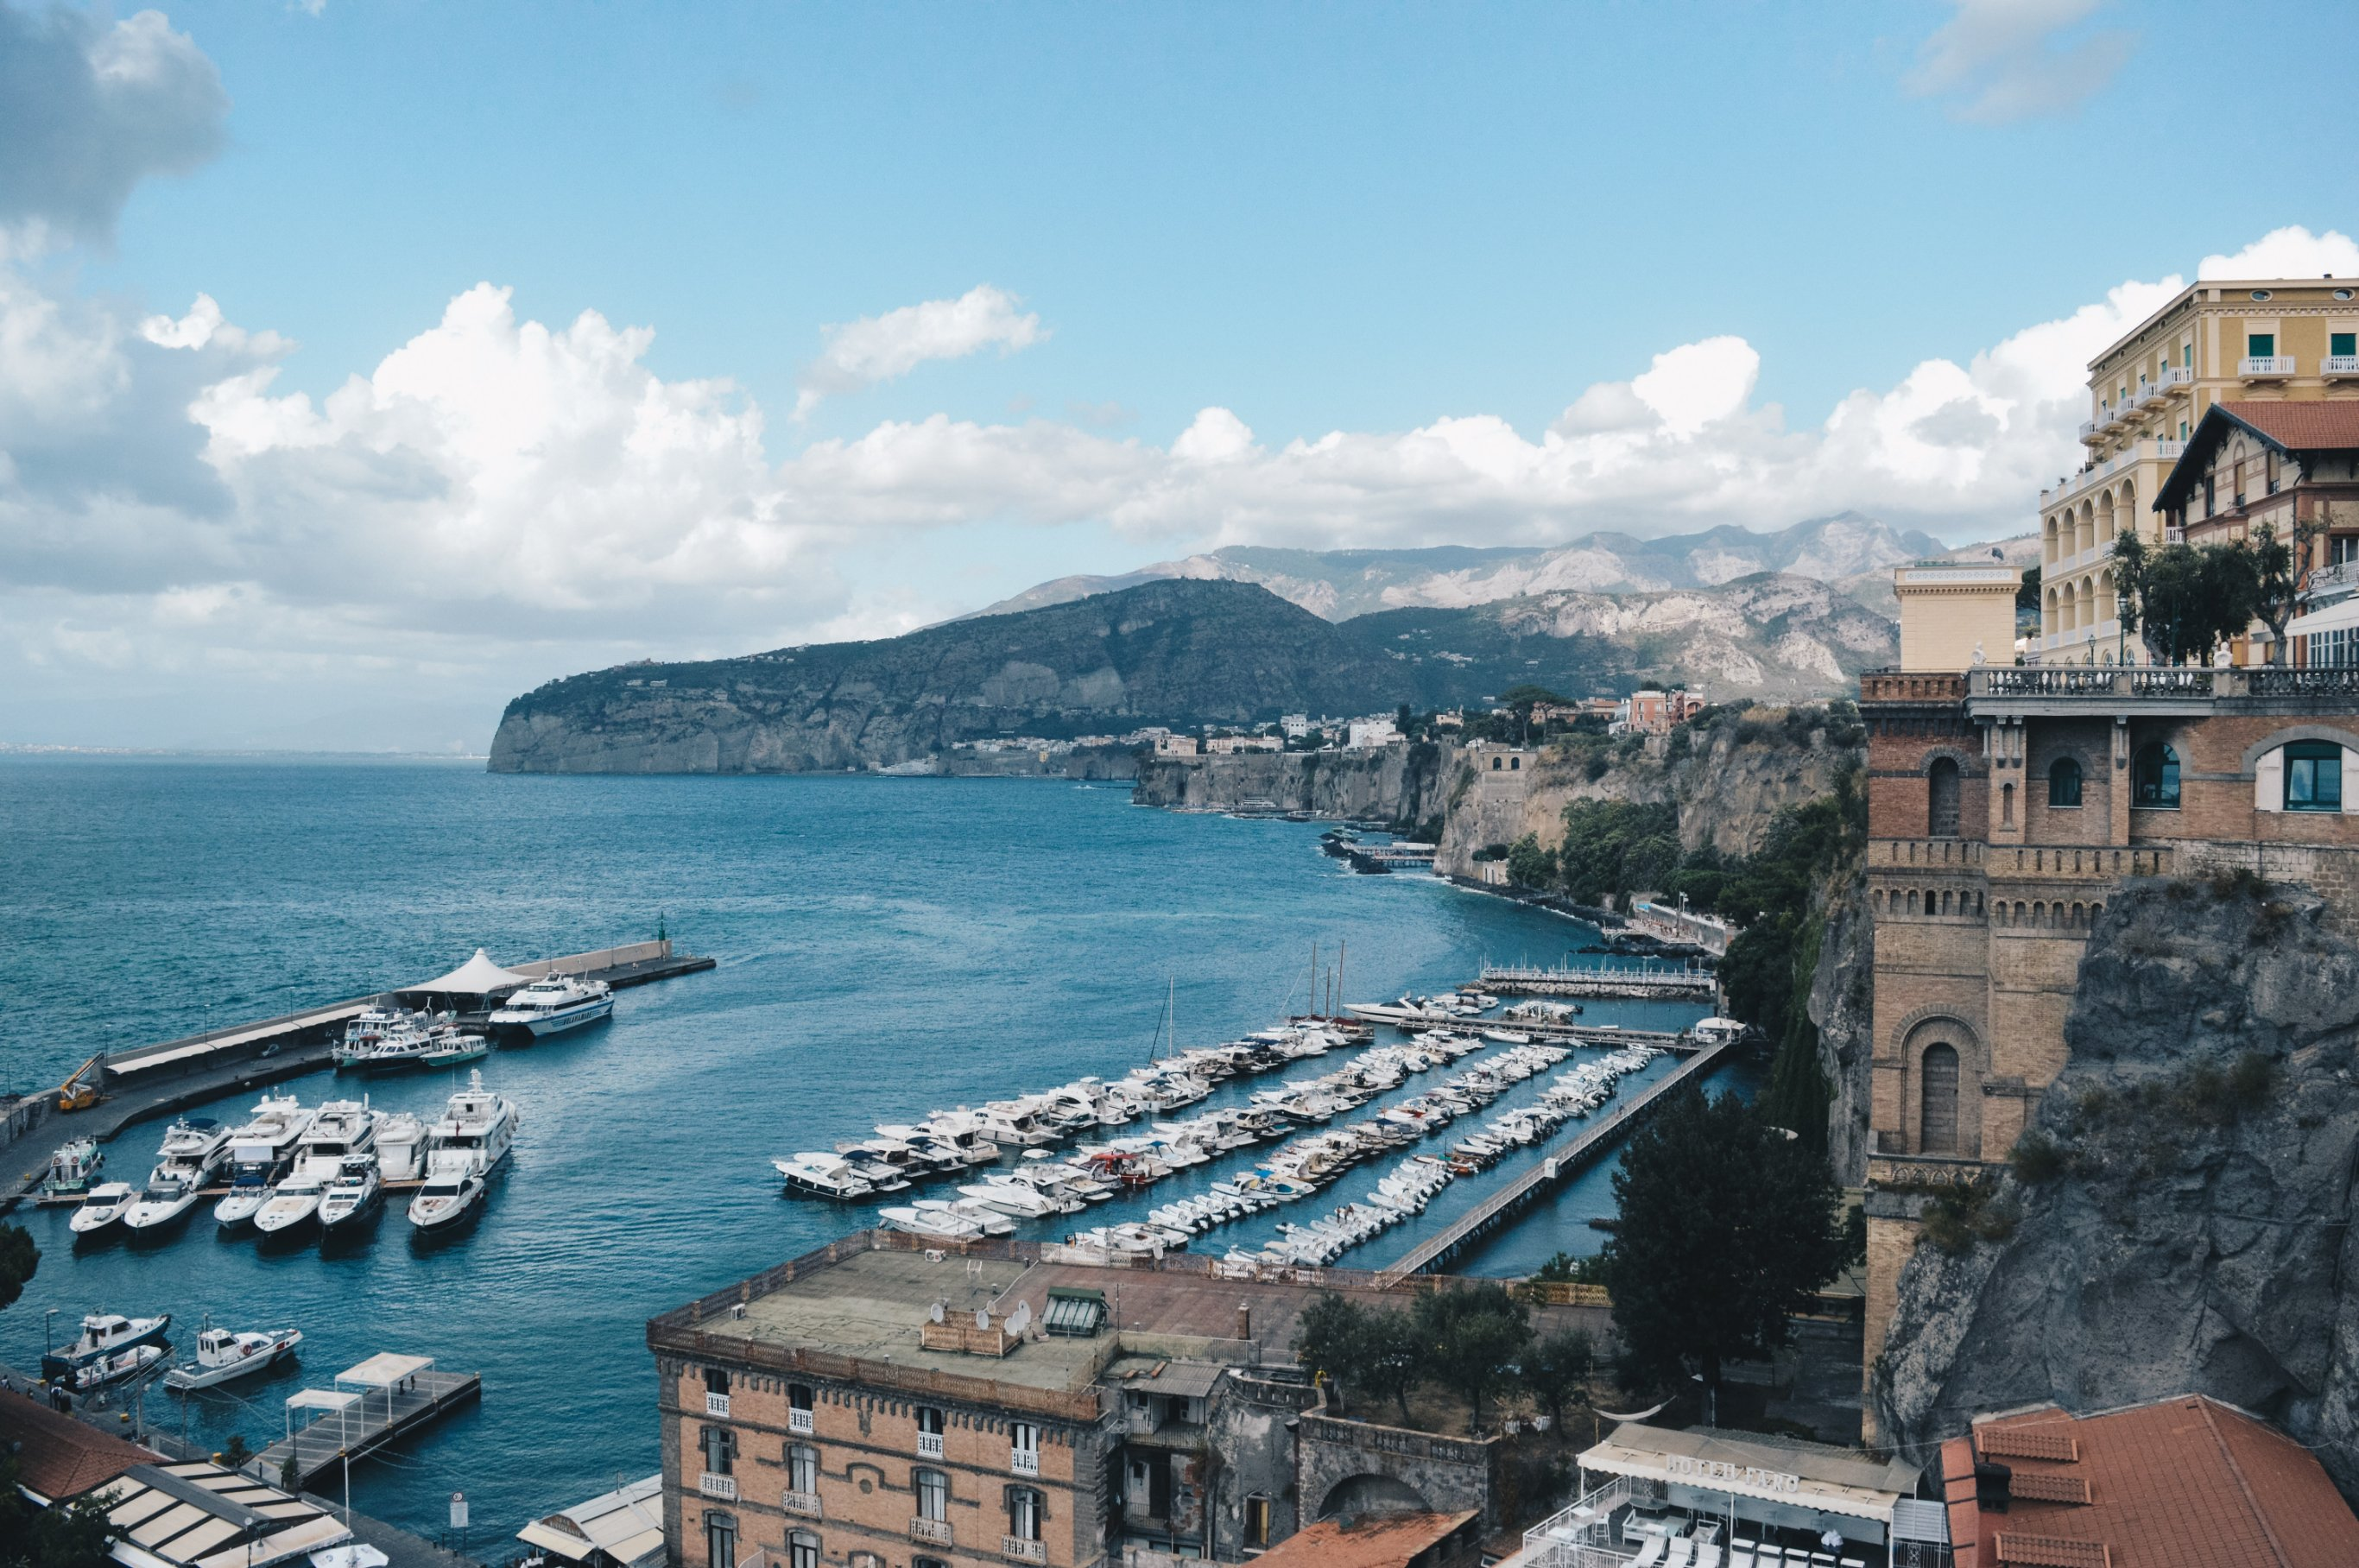 14-Day Venice, Florence, Siena, Sorrento & Rome - Vatican City and Italy Itinerary